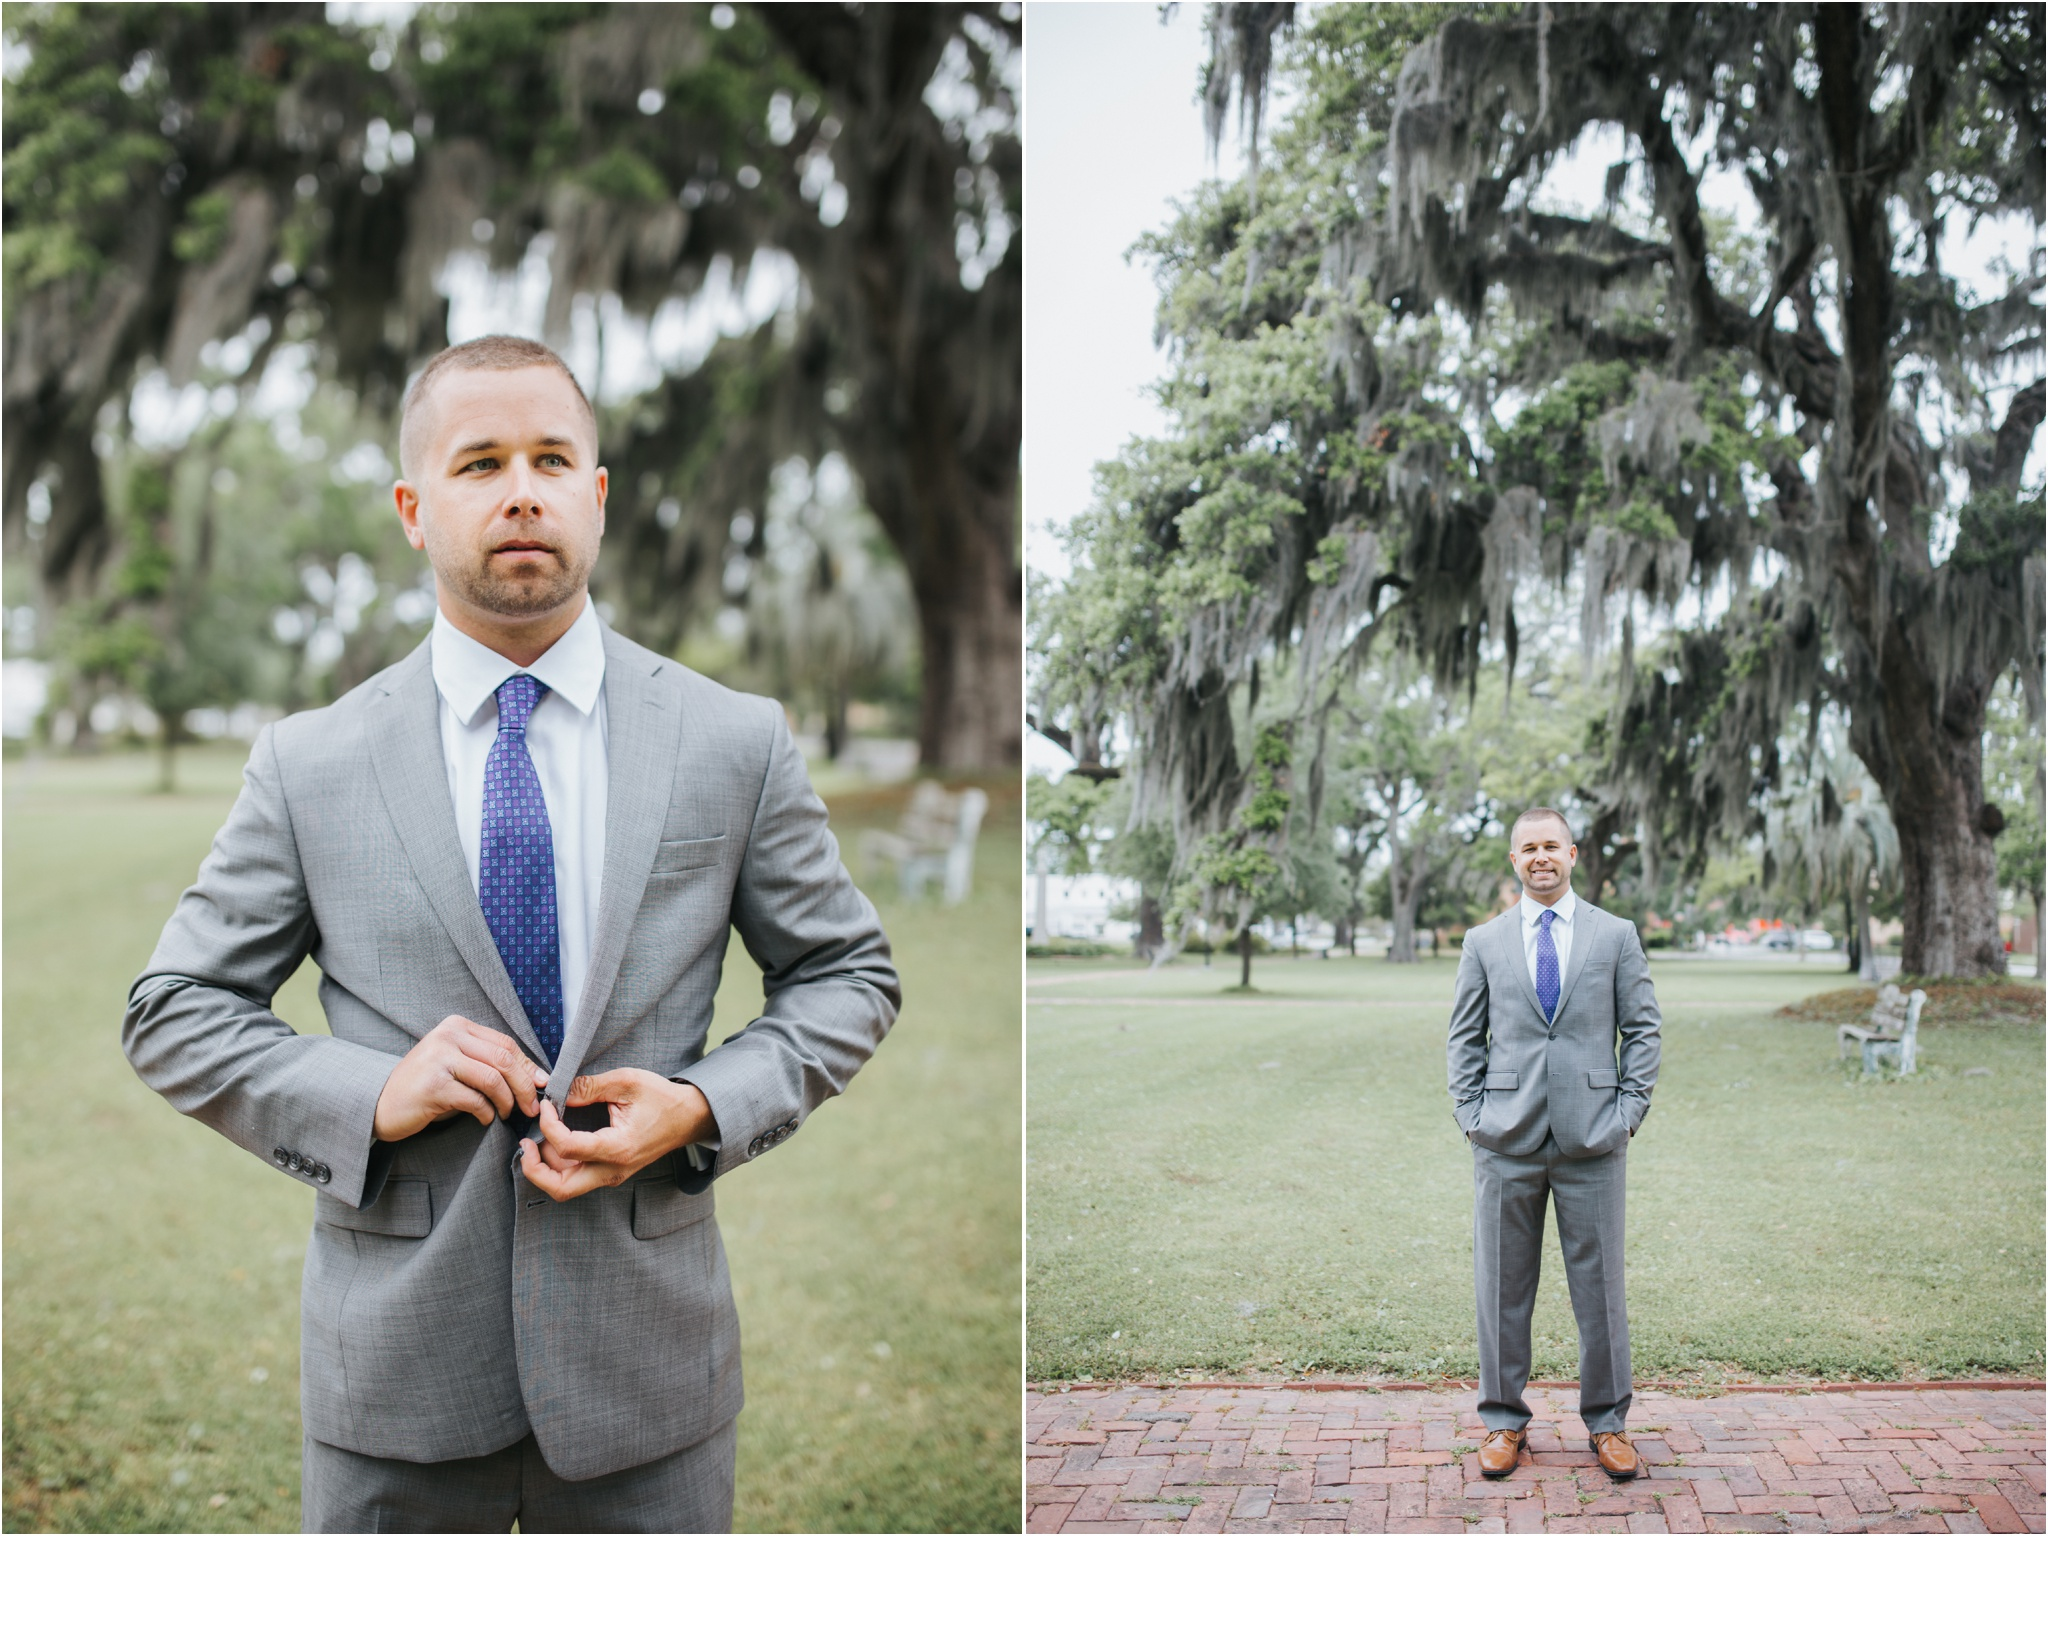 Rainey_Gregg_Photography_St._Simons_Island_Georgia_California_Wedding_Portrait_Photography_1493.jpg